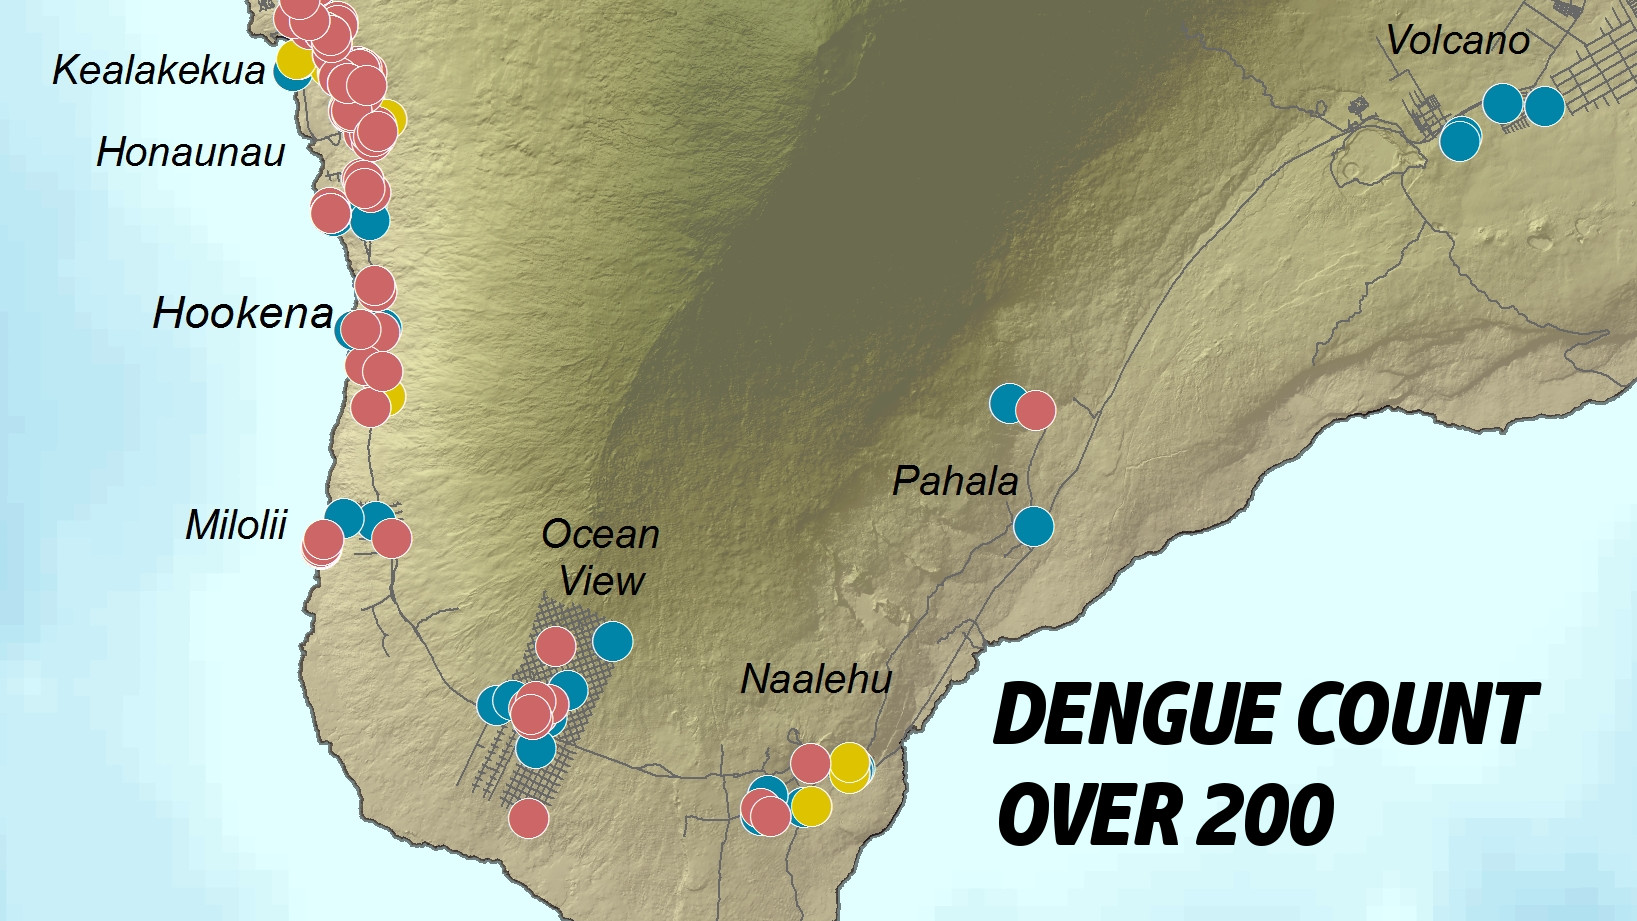 Hawai Dengue Fever Count Passes 200 On New Years Day